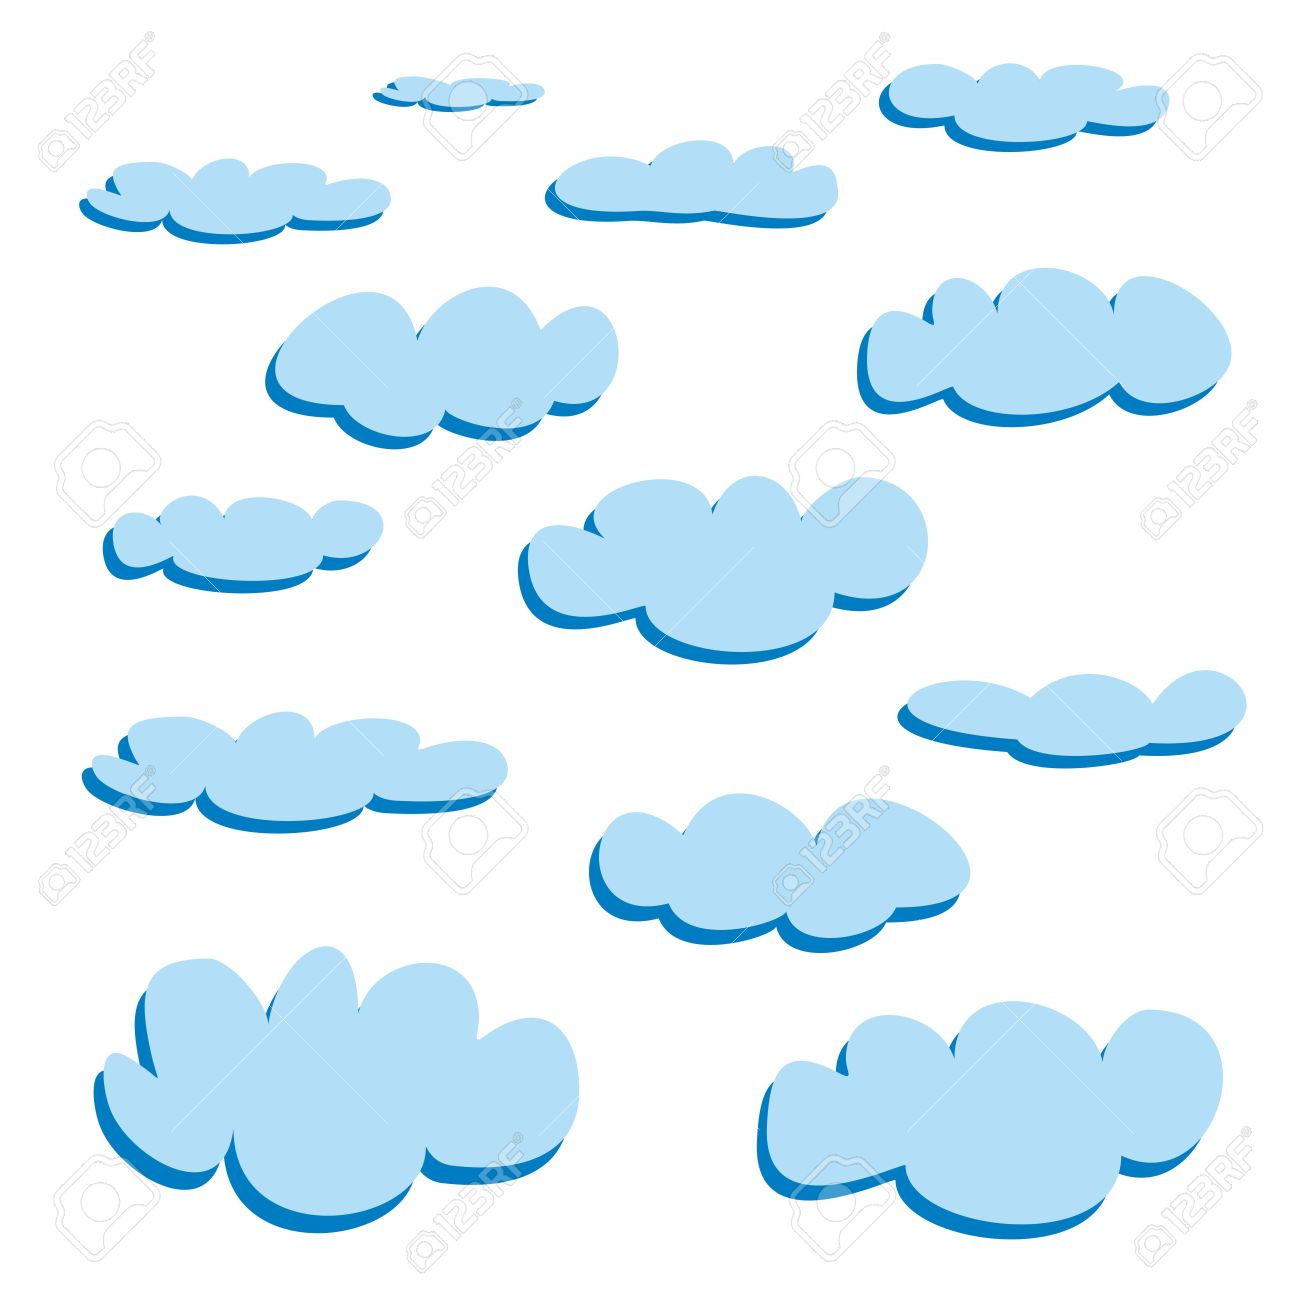 blue clouds isolated on white background vector set cloud rh 123rf com cloud vectors illustrator cloud vectors illustrator